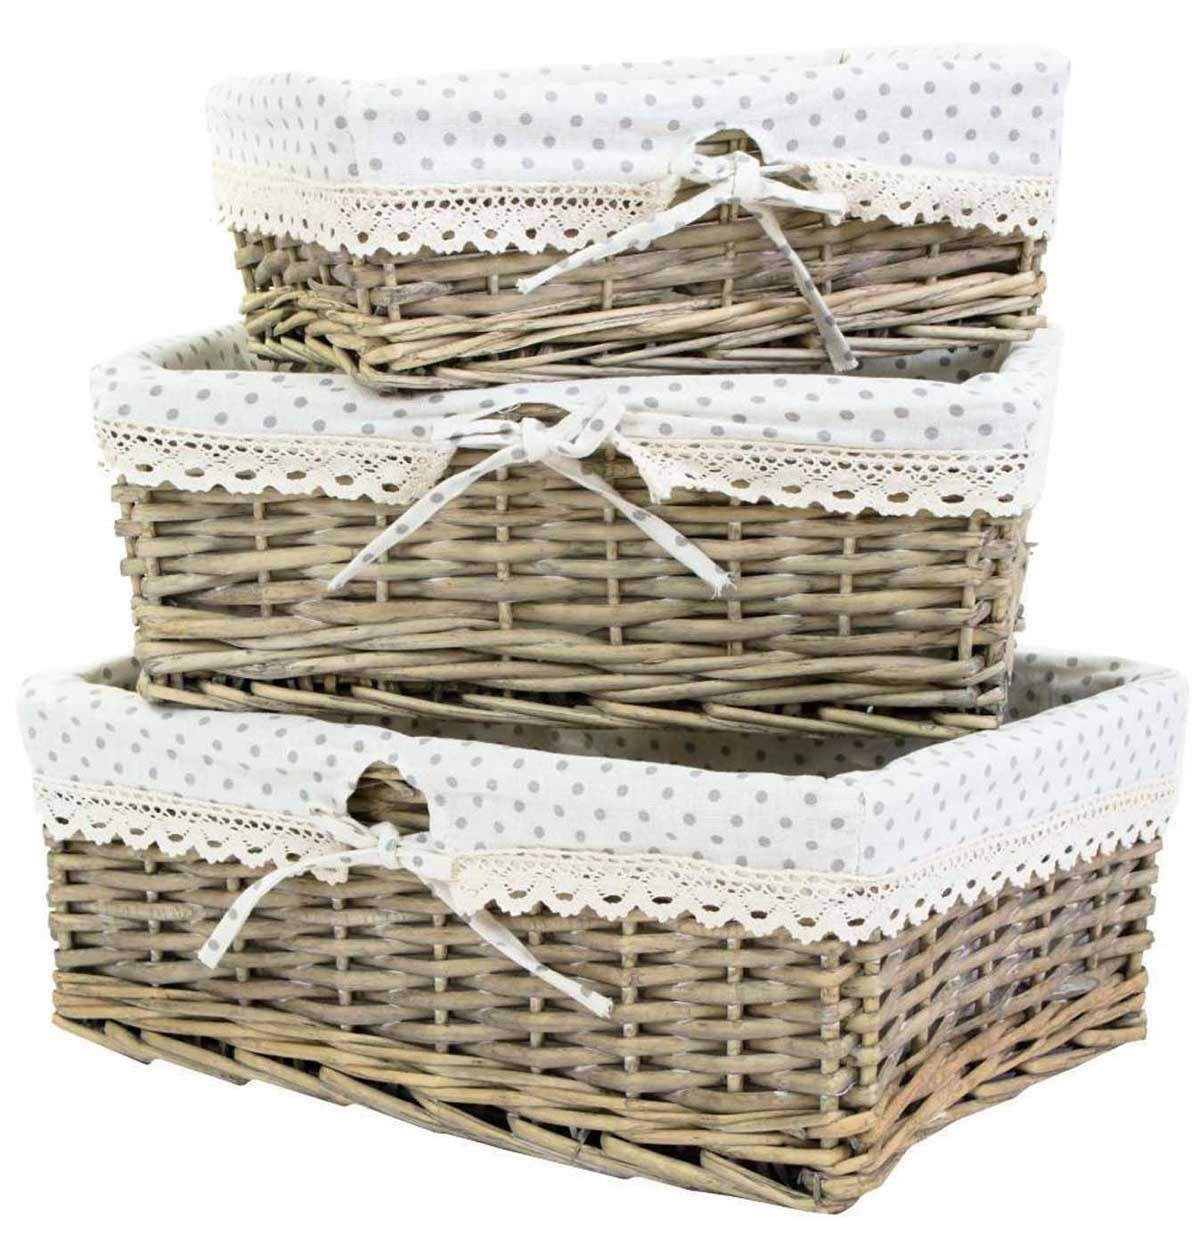 Willow Wicker Storage Basket With Liner For Home: Set Of 3 Wicker Willow Shallow Storage Shop Display Basket